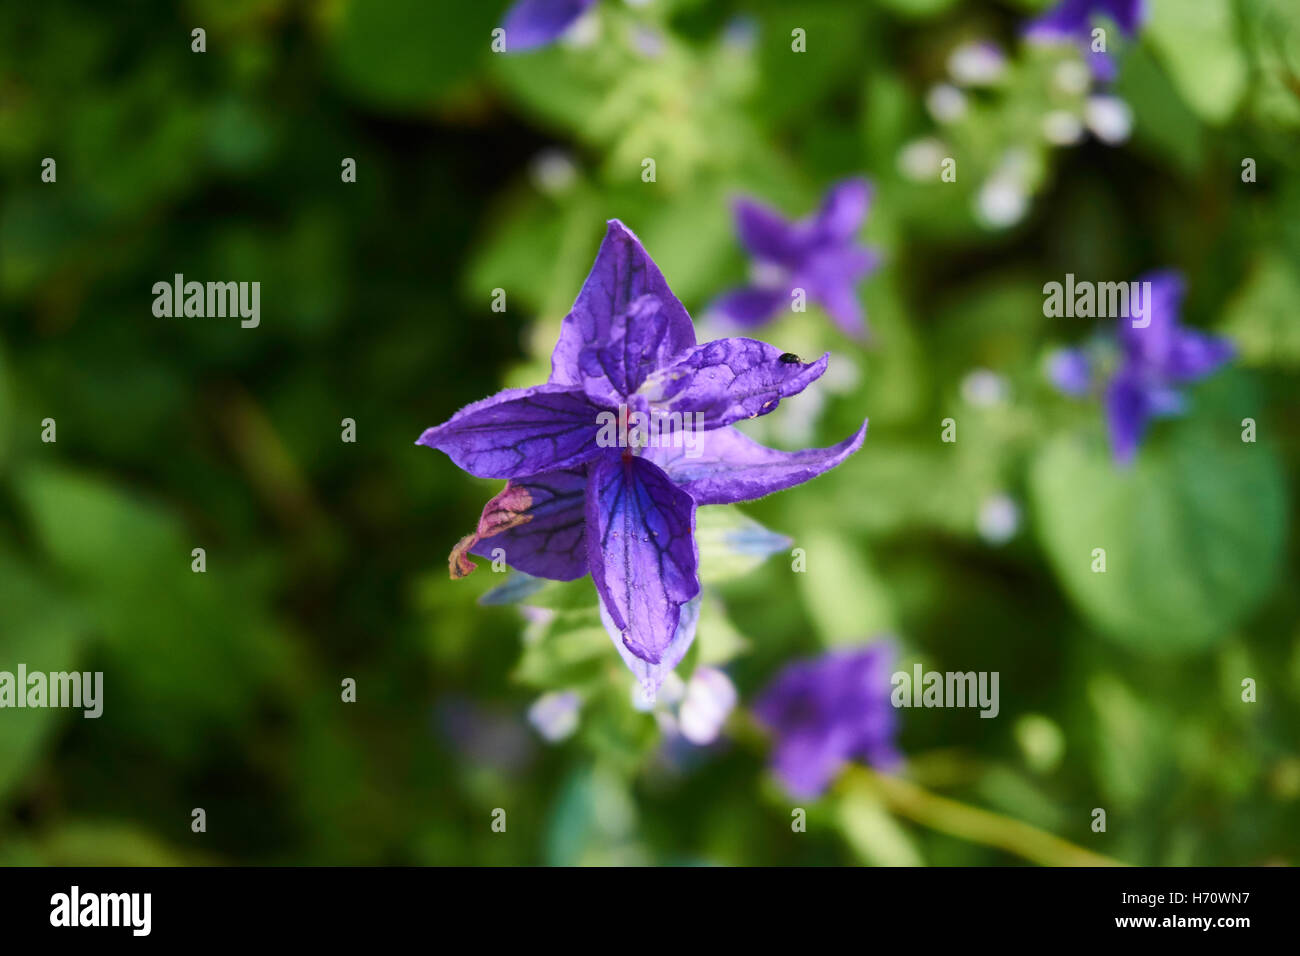 Blue flowers pink fern stock photos blue flowers pink fern stock extremely rare and beautiful garden well groomed with amazing species of flowers stock image izmirmasajfo